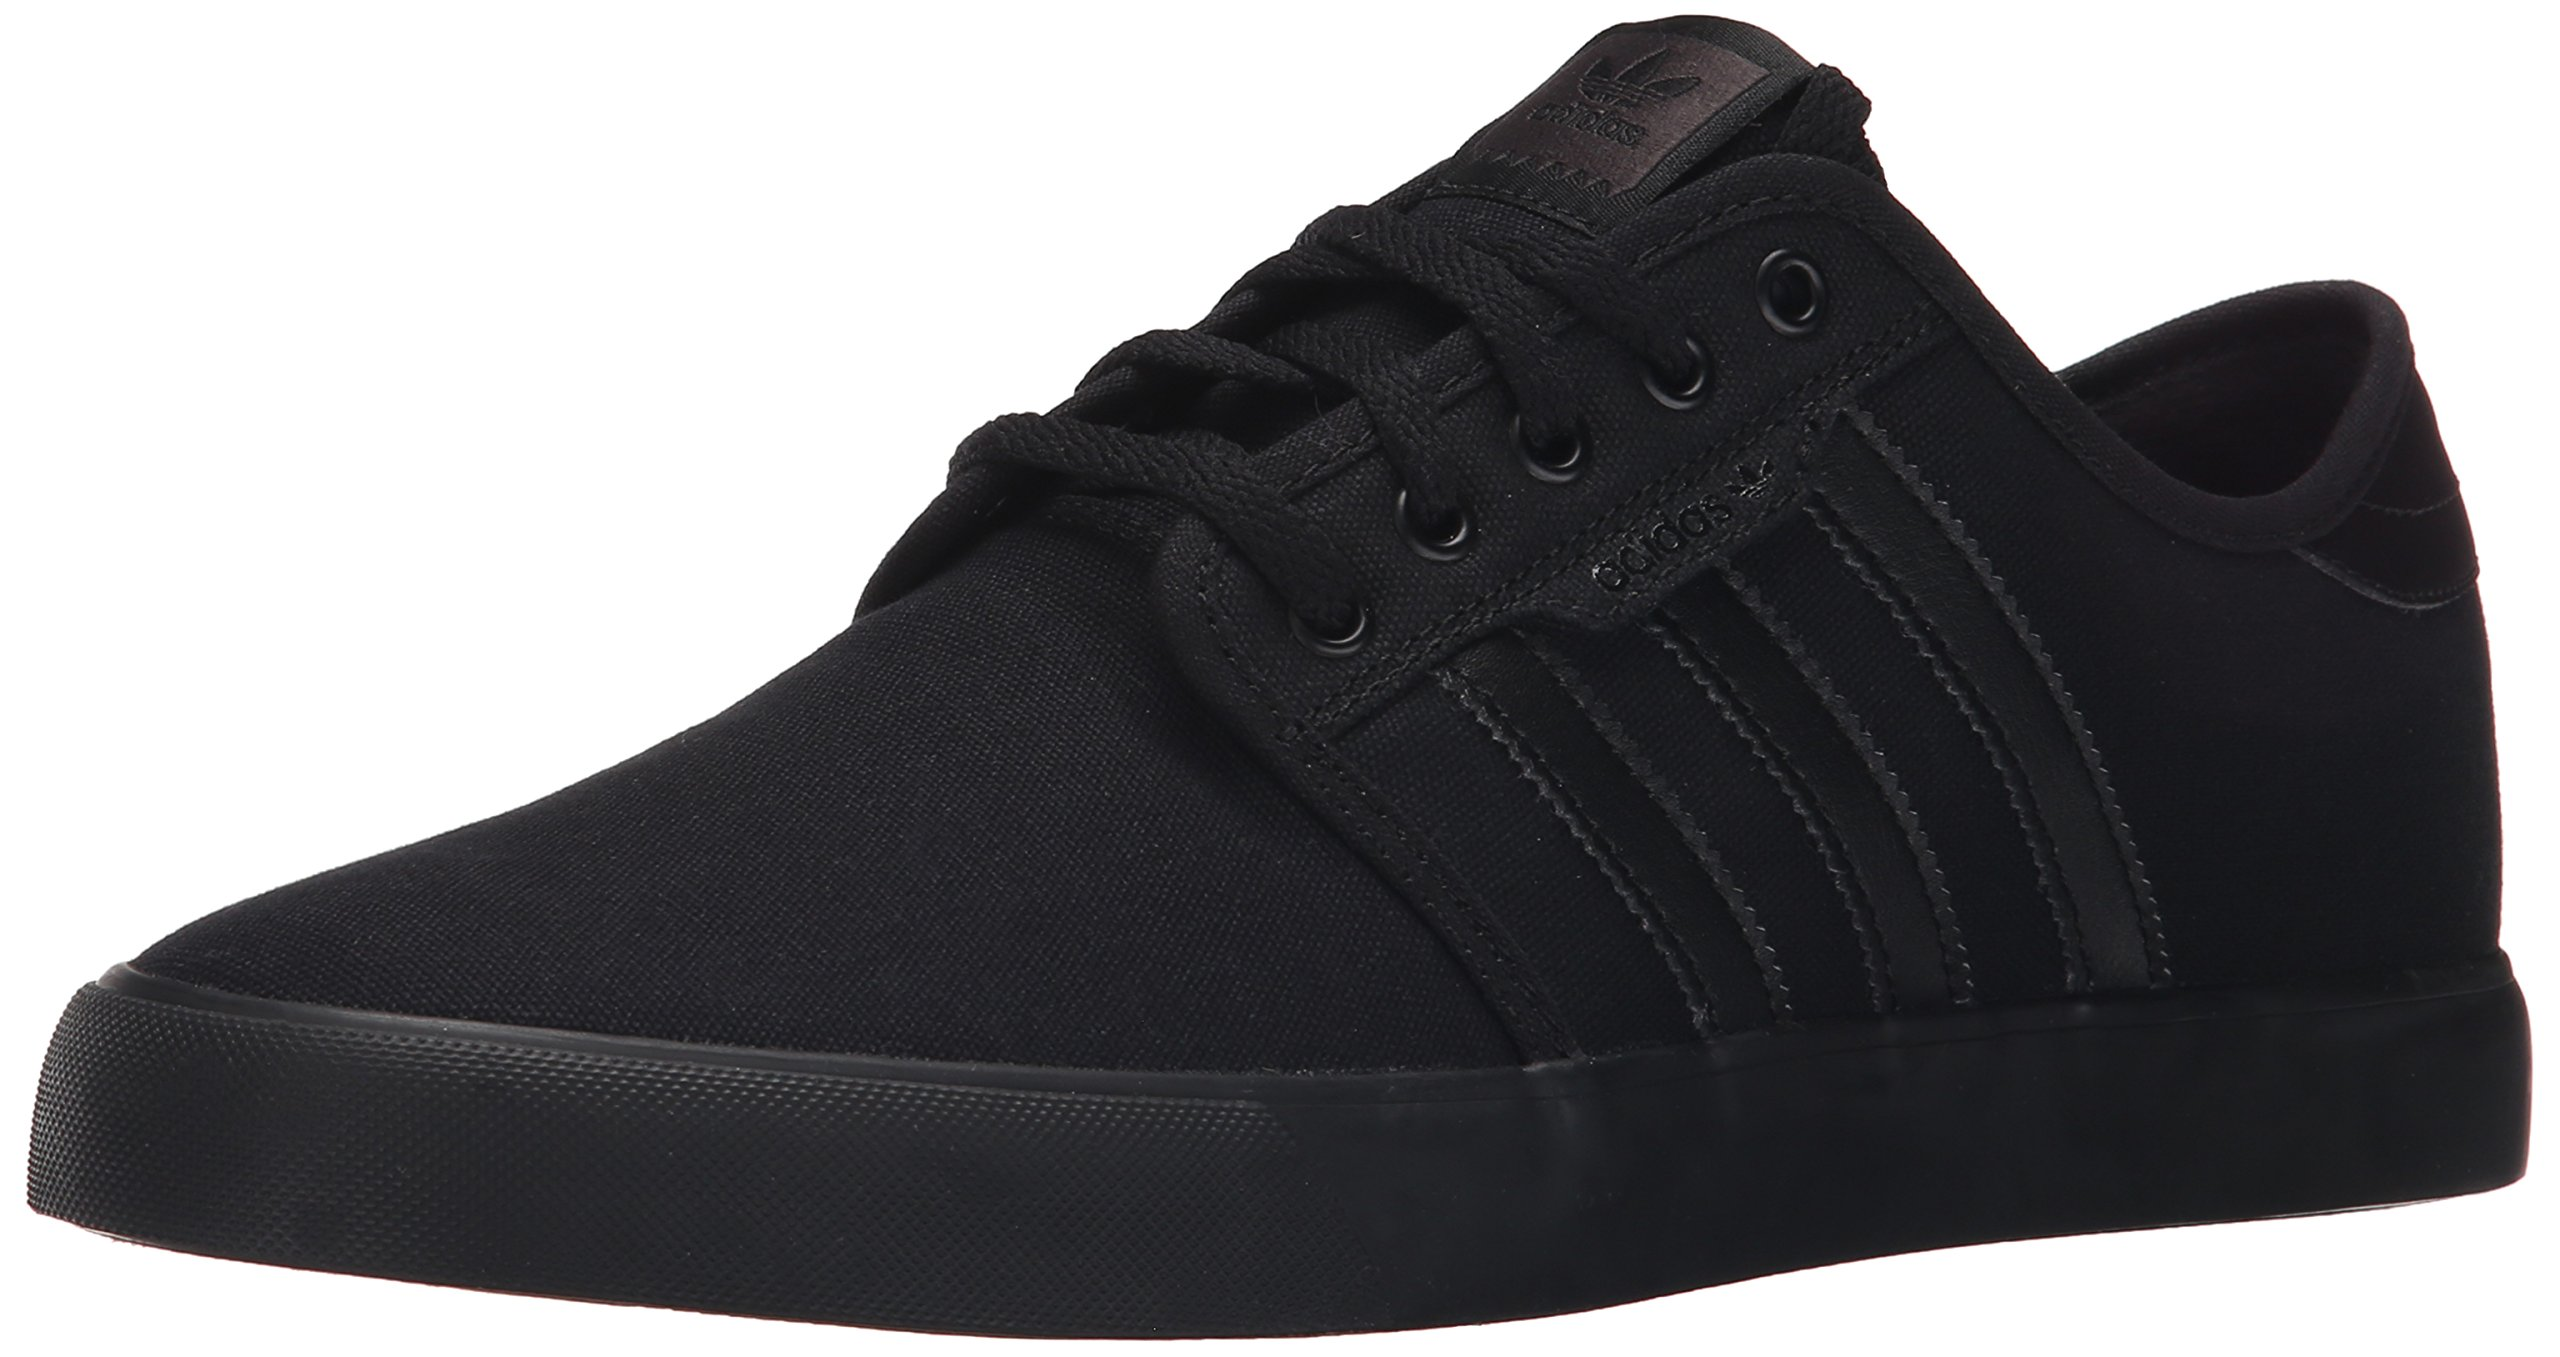 Adidas Men's Seeley Skate Shoe,Black/Black/Black,11 M US by adidas Originals